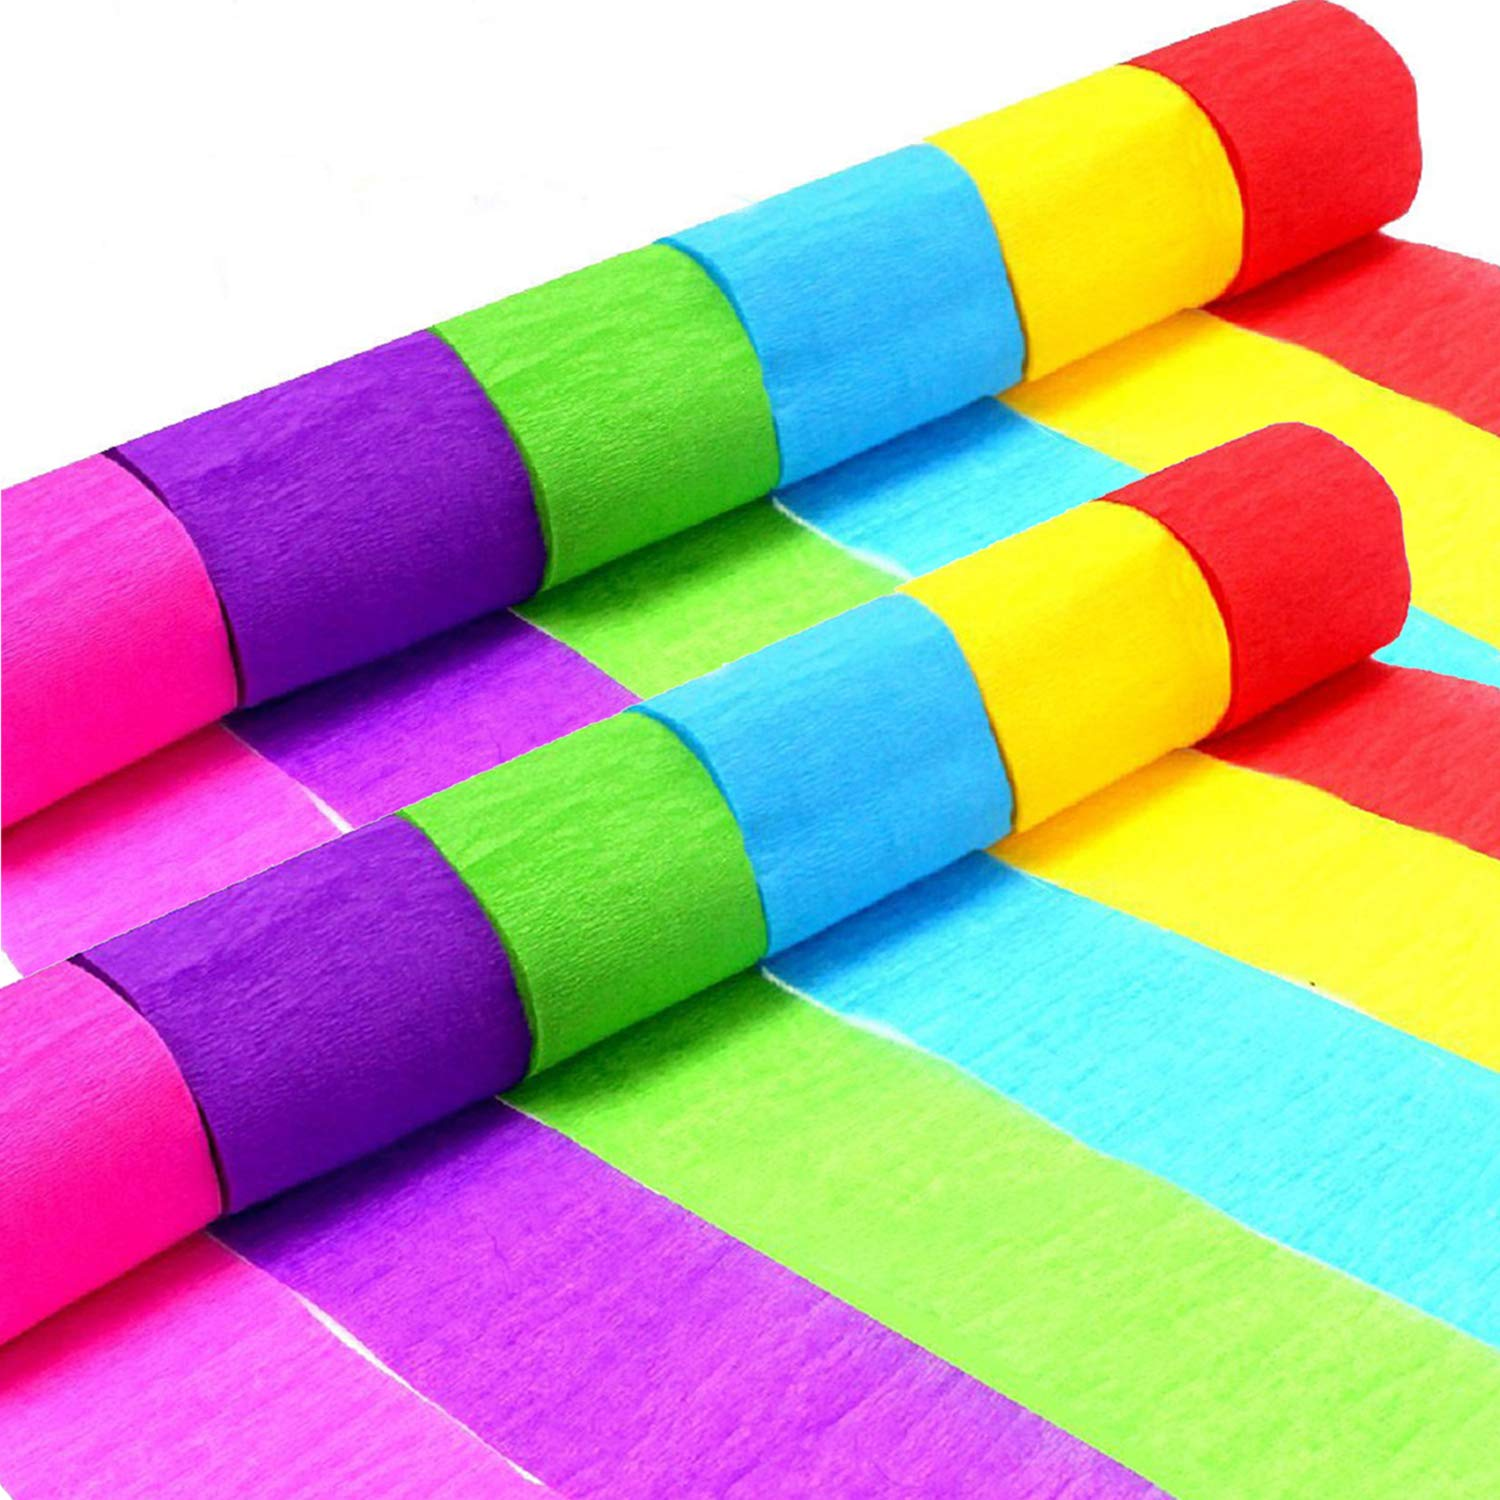 Crepe Paper Rolls, 12 Party Streamers Paper Rolls 6 Colours for Home DIY Birthday, Wedding, Baby Shower, Christmas, Class Party Graduation Ceremony Decorations Eholder